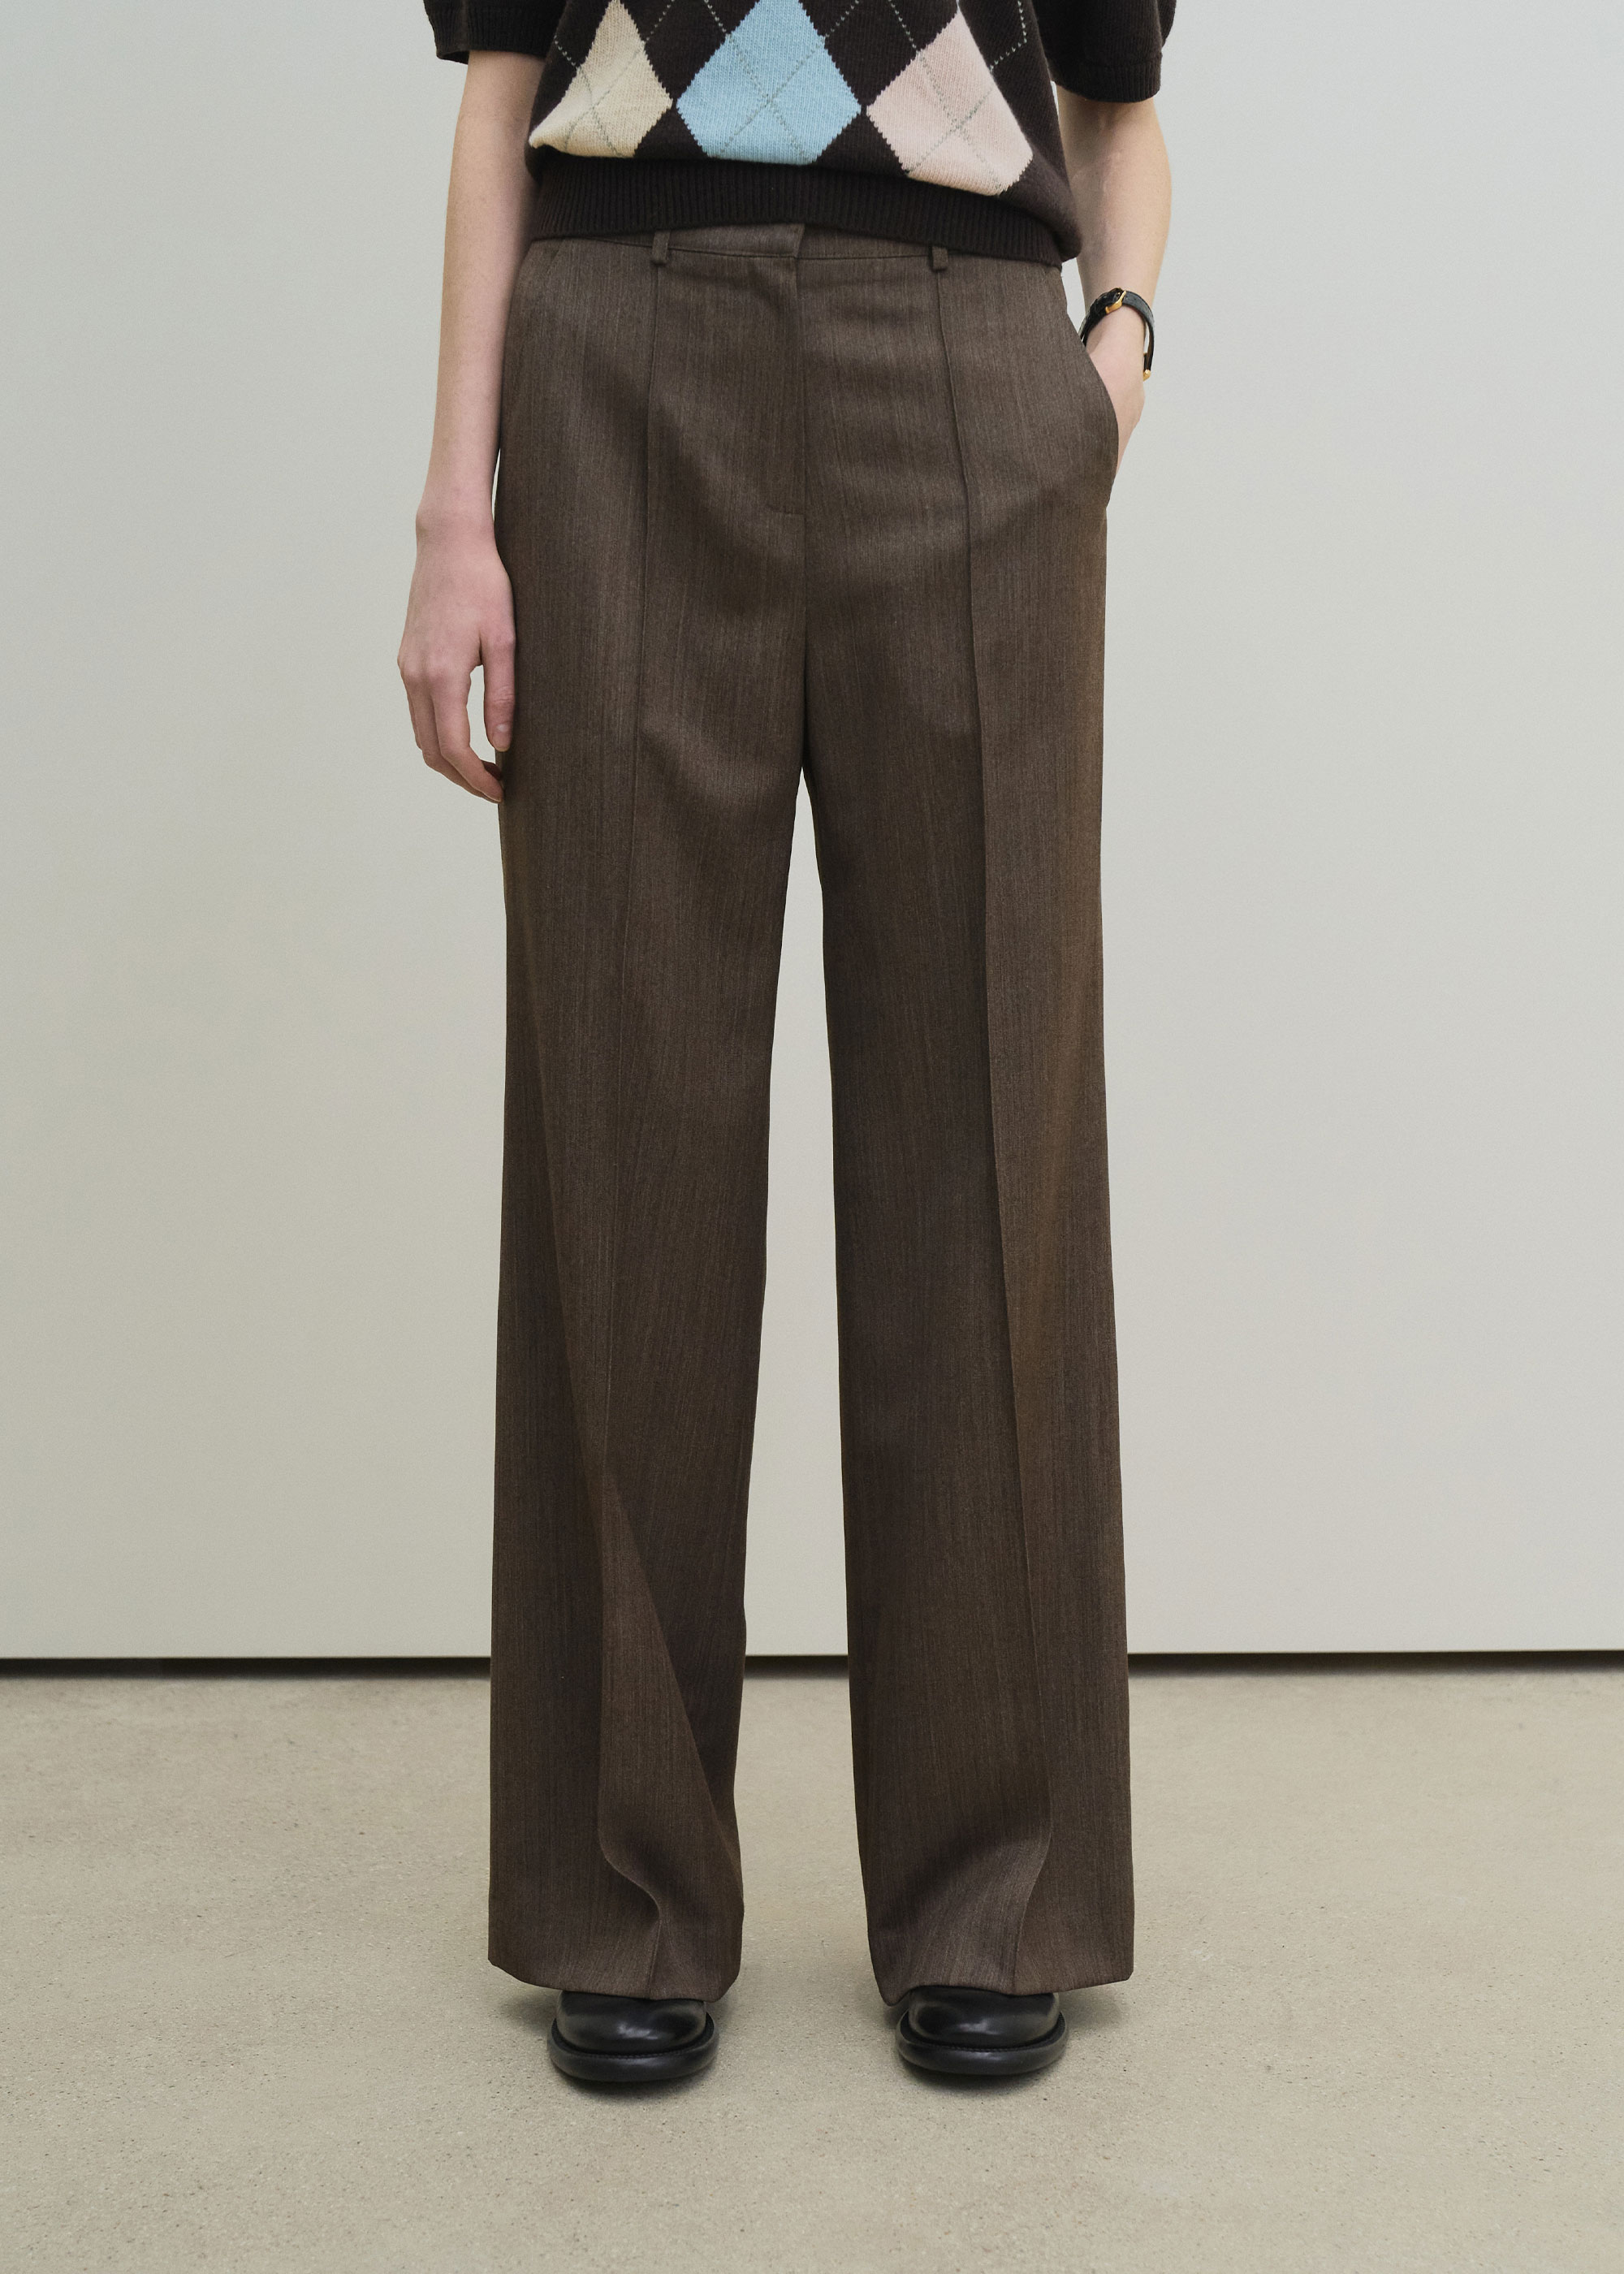 21S/S FLARED LEG PANTS [BROWN]